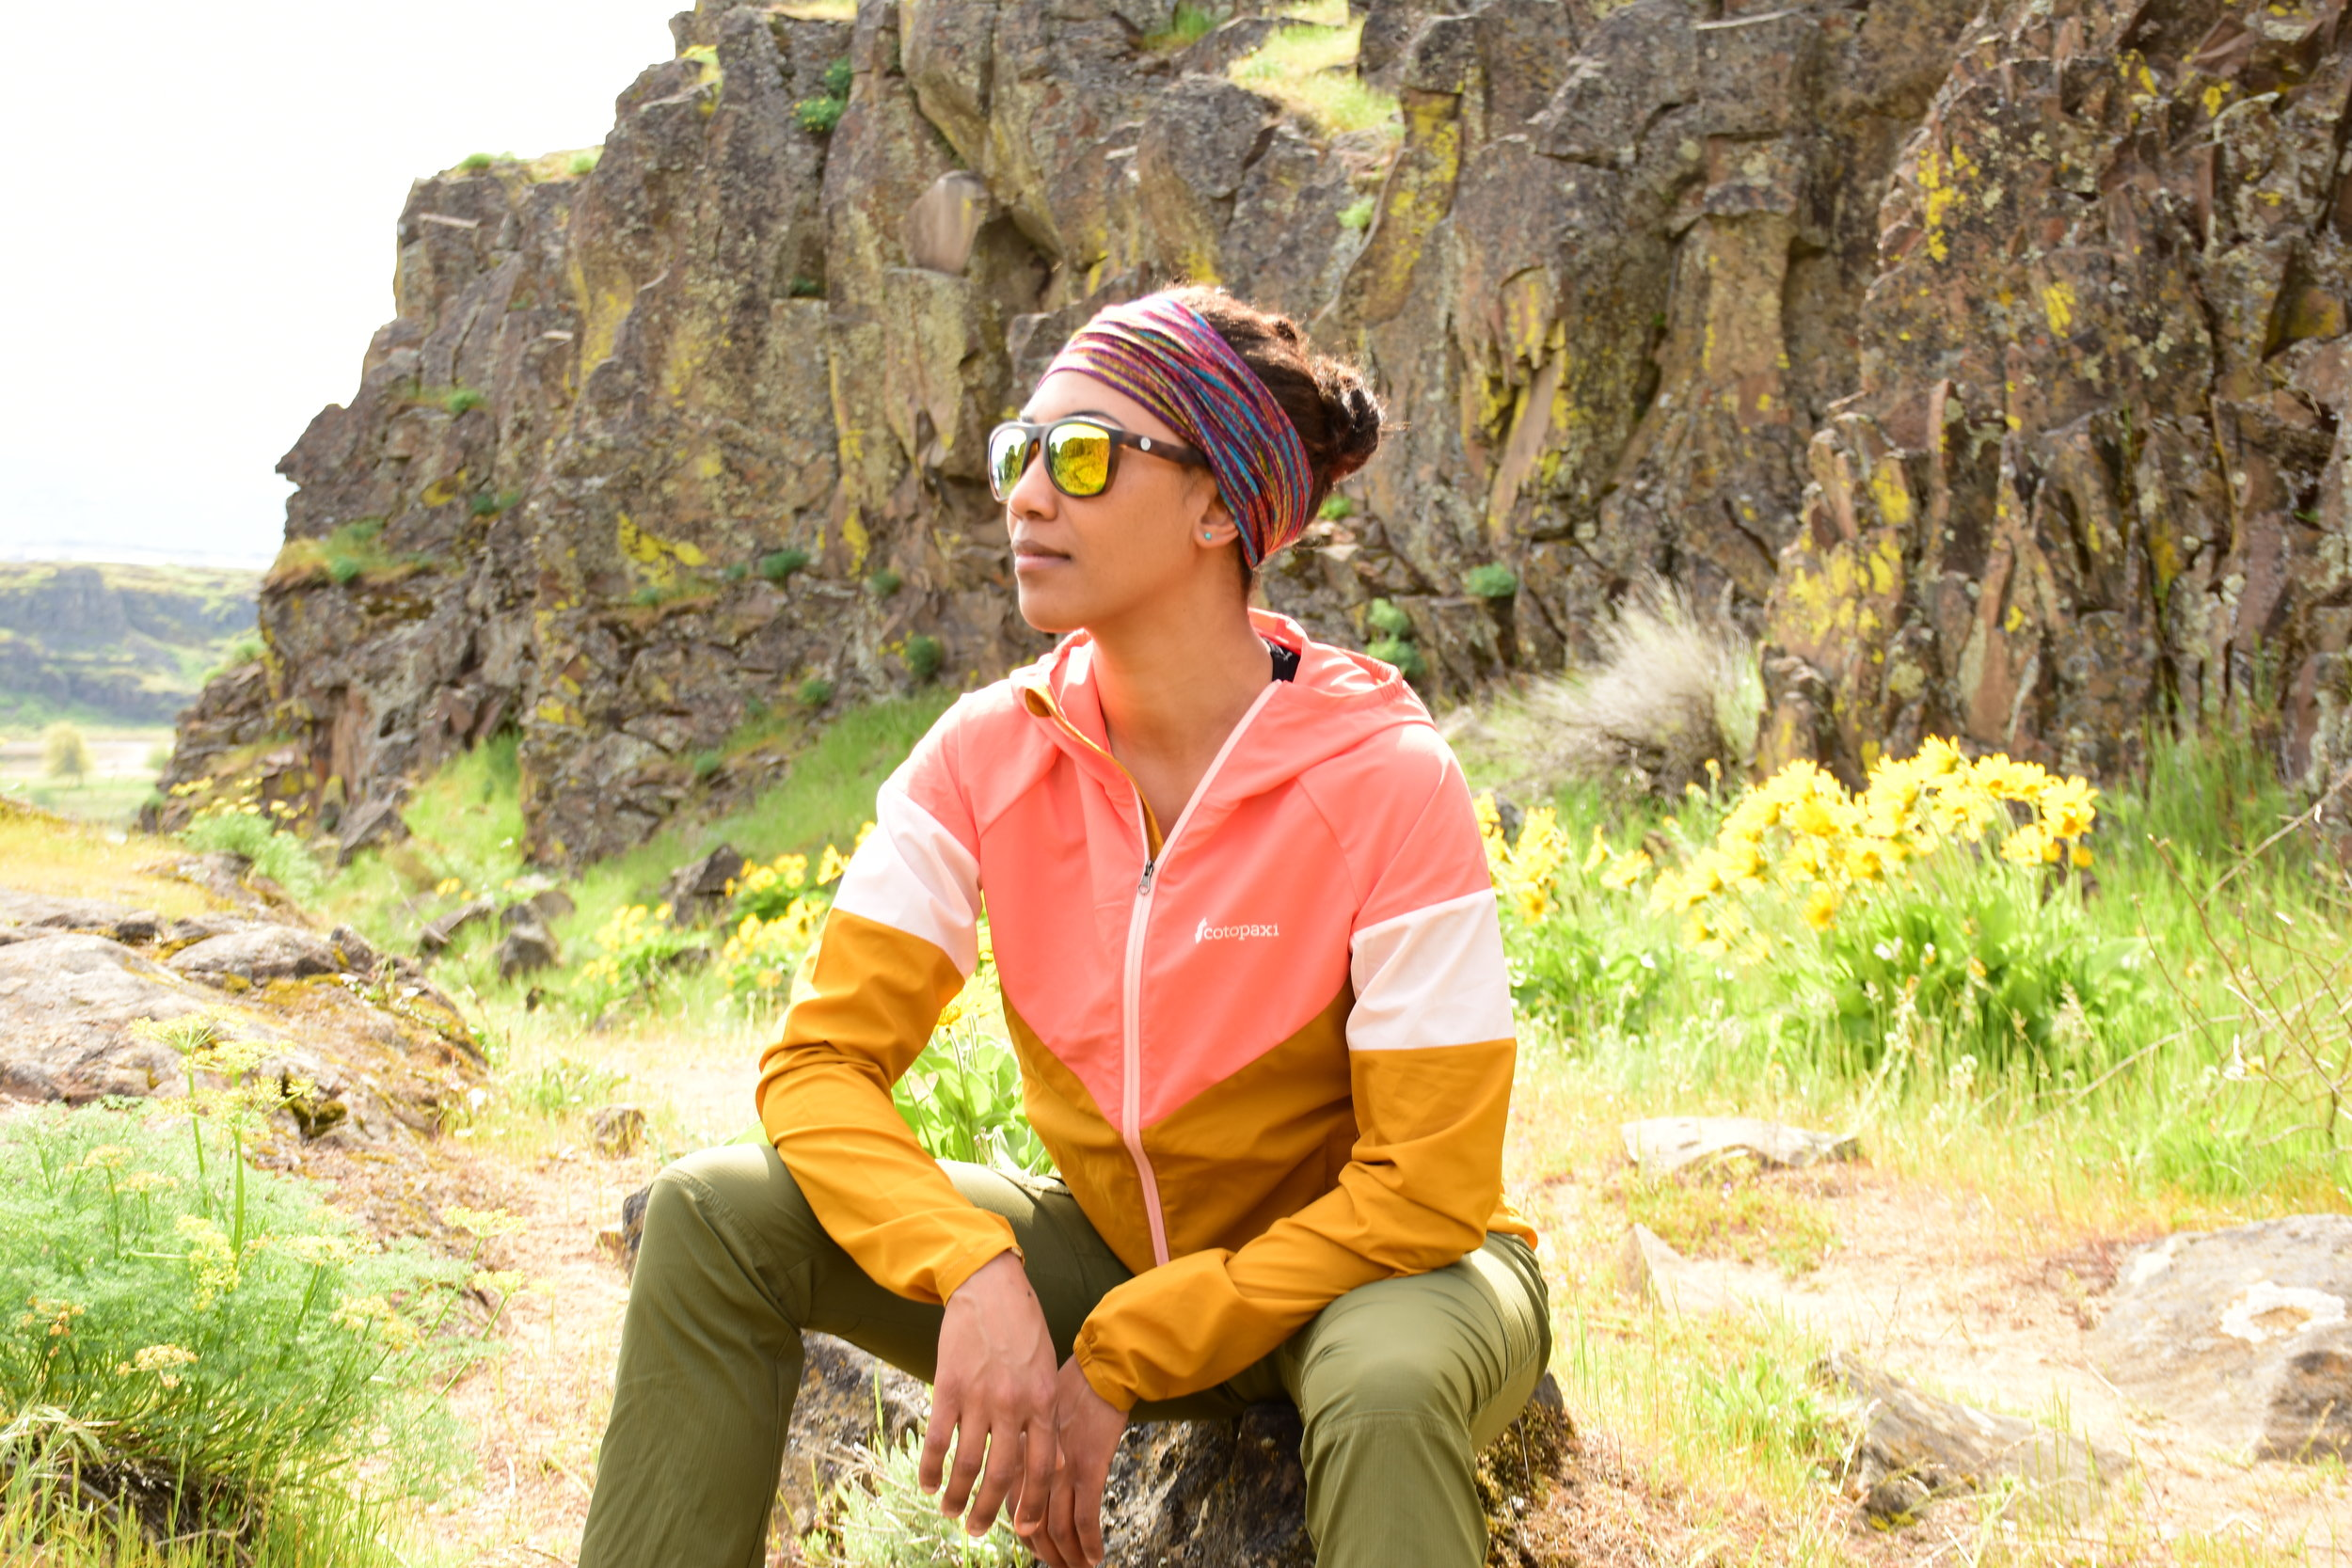 Frontal view of the Cotopaxi Palmas jacket, Horsetheif Butte, Oregon. Photo courtesy of Nathan Kaul